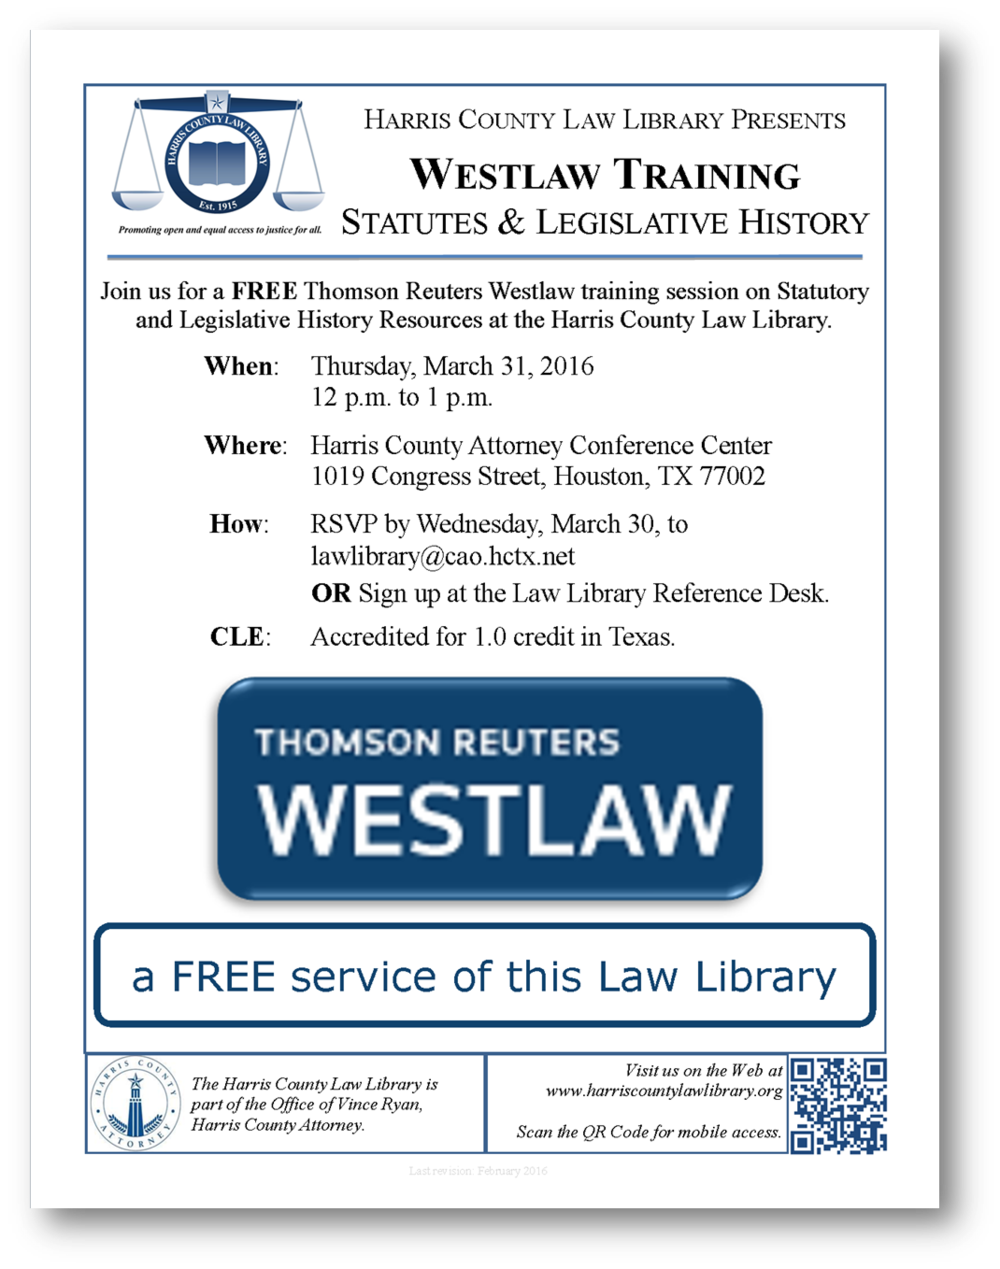 Link to PDF flyer for Westlaw training session, March 31, 2016